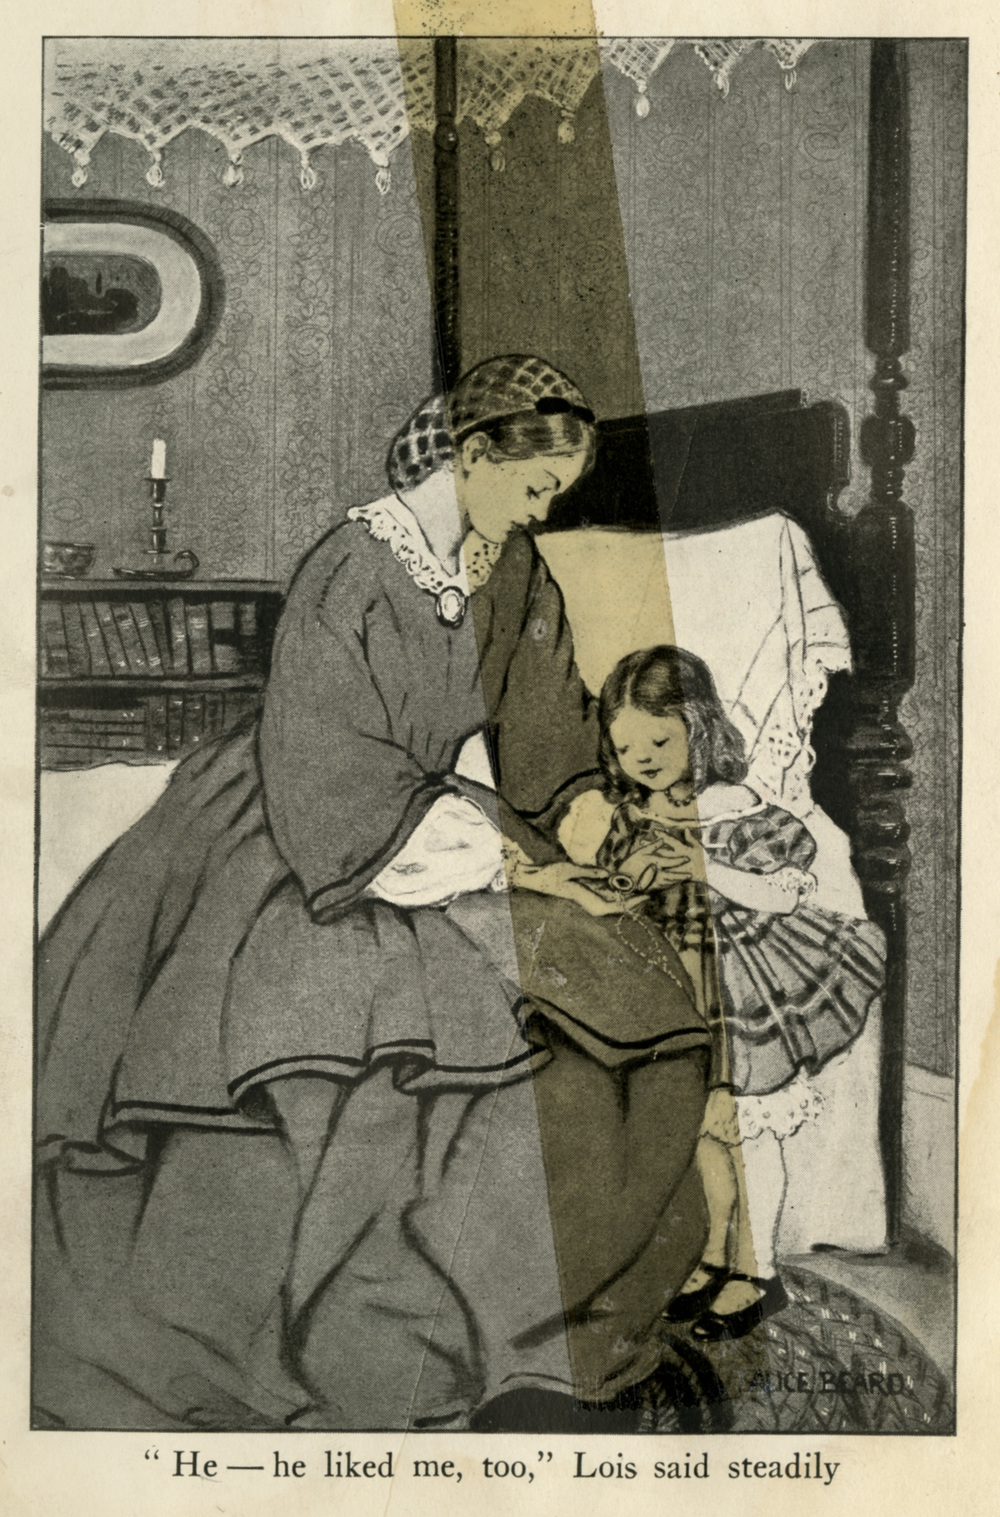 Alice Beard, frontispiece in the novel Elizabeth Bess, by E.C. Scott. Published The Macmillan Company, 1917.